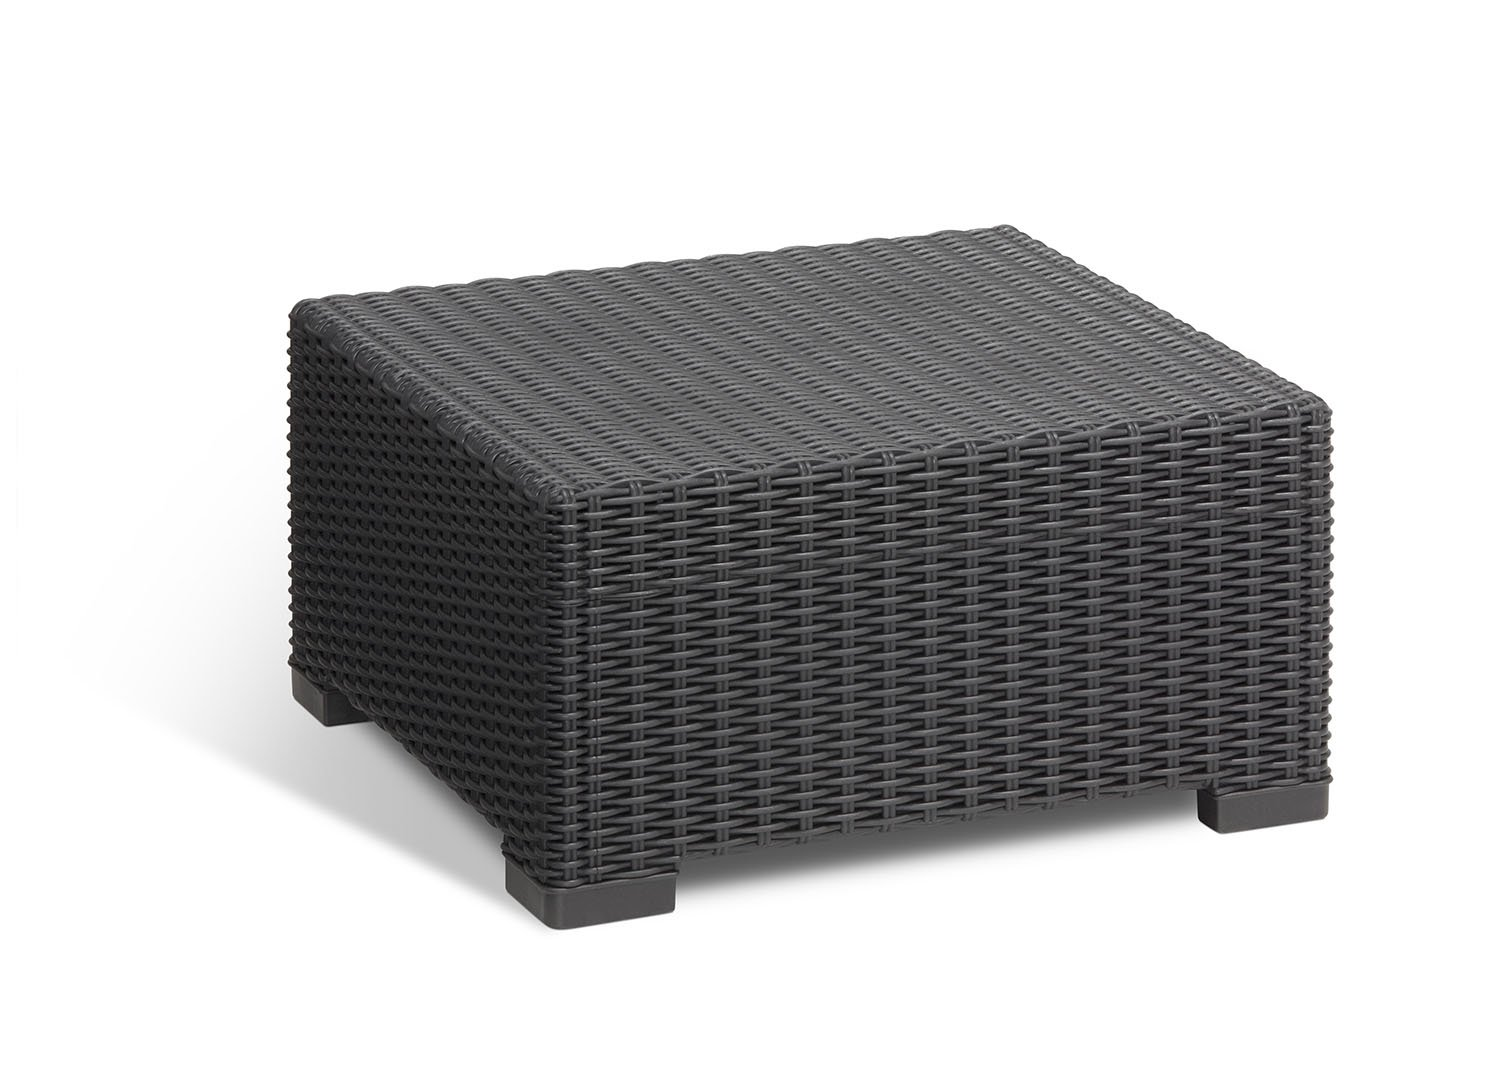 Keter California All-Weather Outdoor Patio Coffee Table in a Resin Plastic Wicker Pattern, Graphite